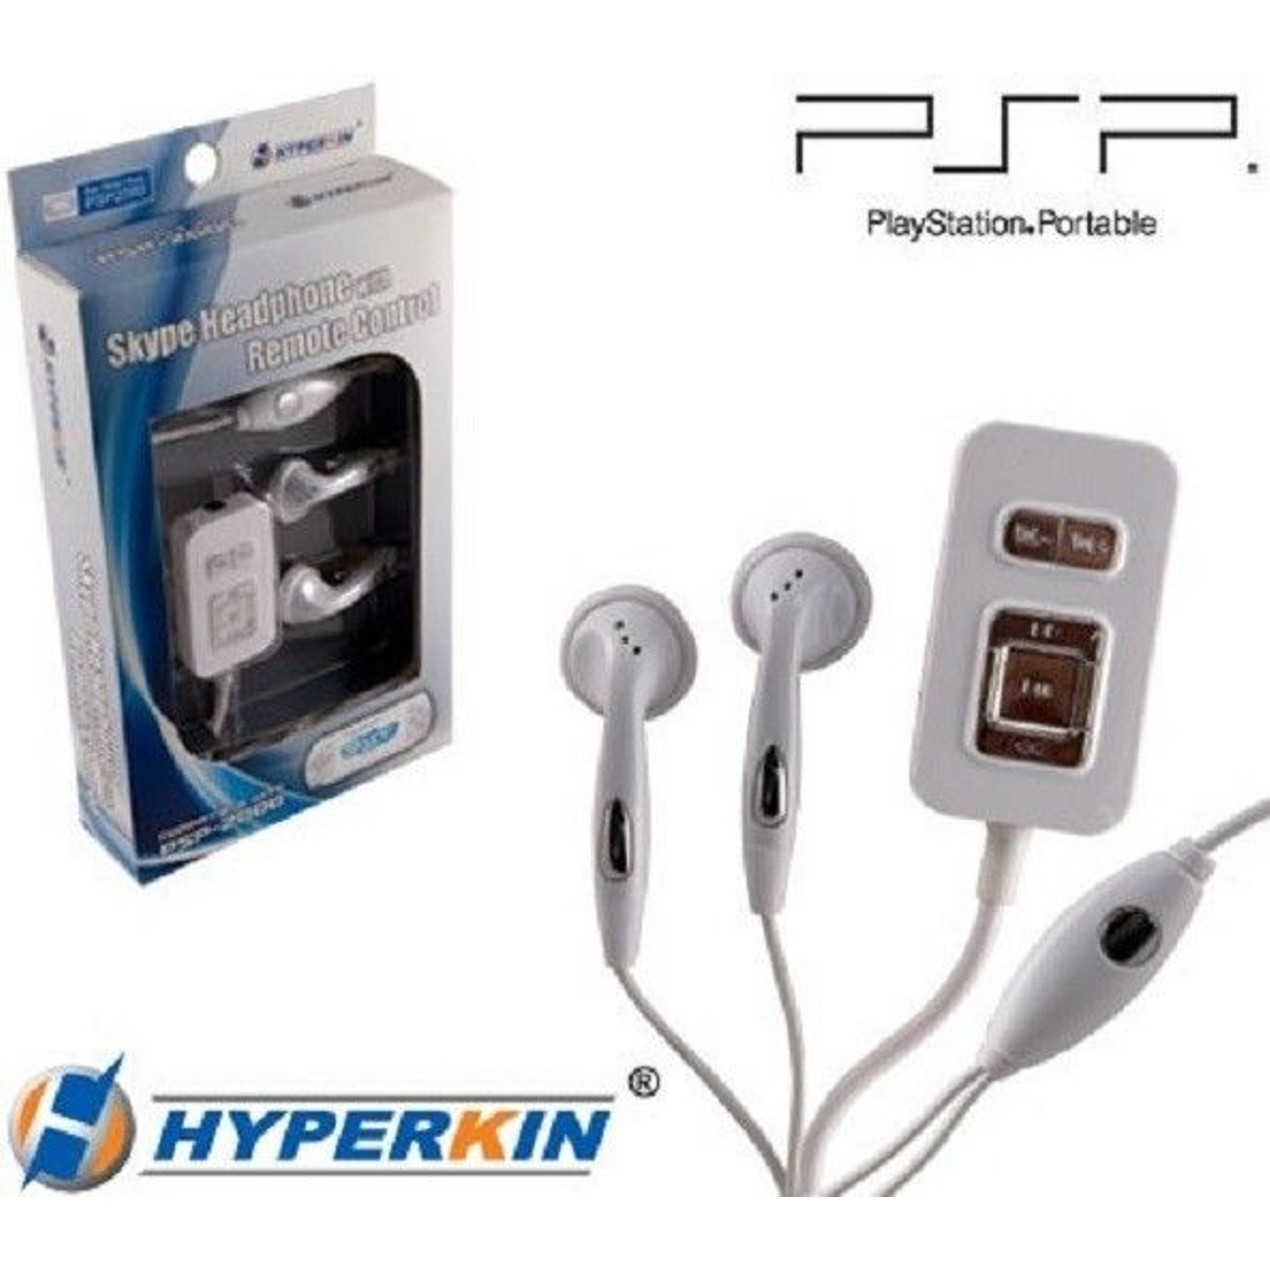 PSP Skype Headphones with Remote Control - Tanga